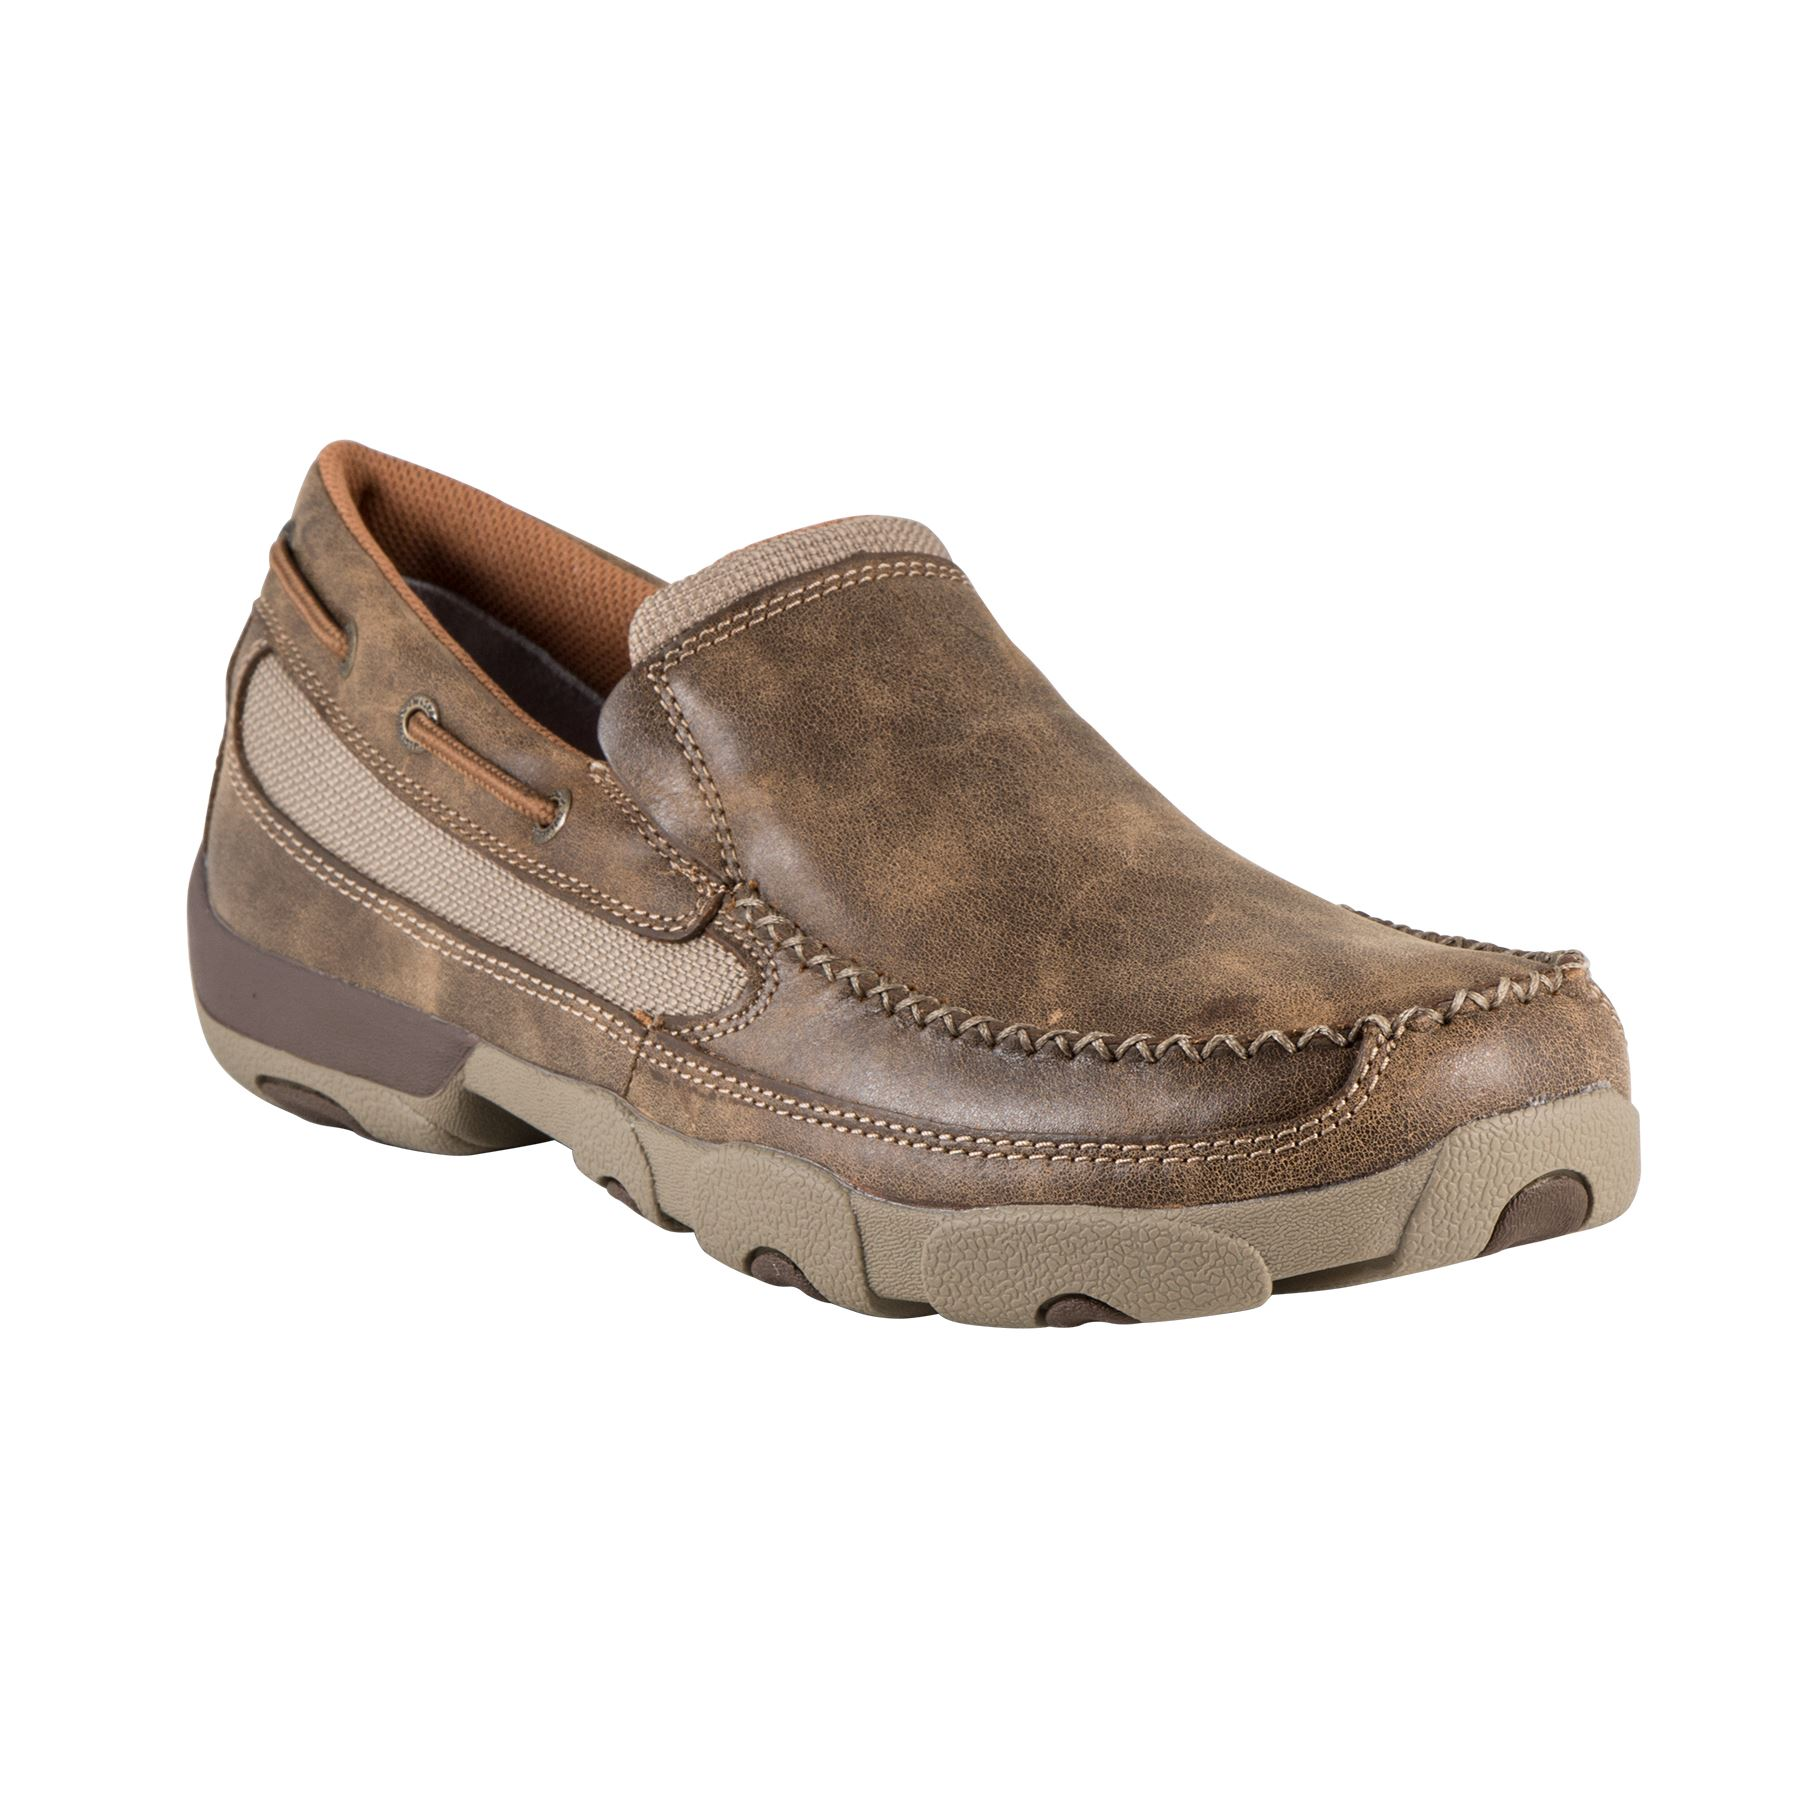 Driving Moccasin   Schneiders Saddlery